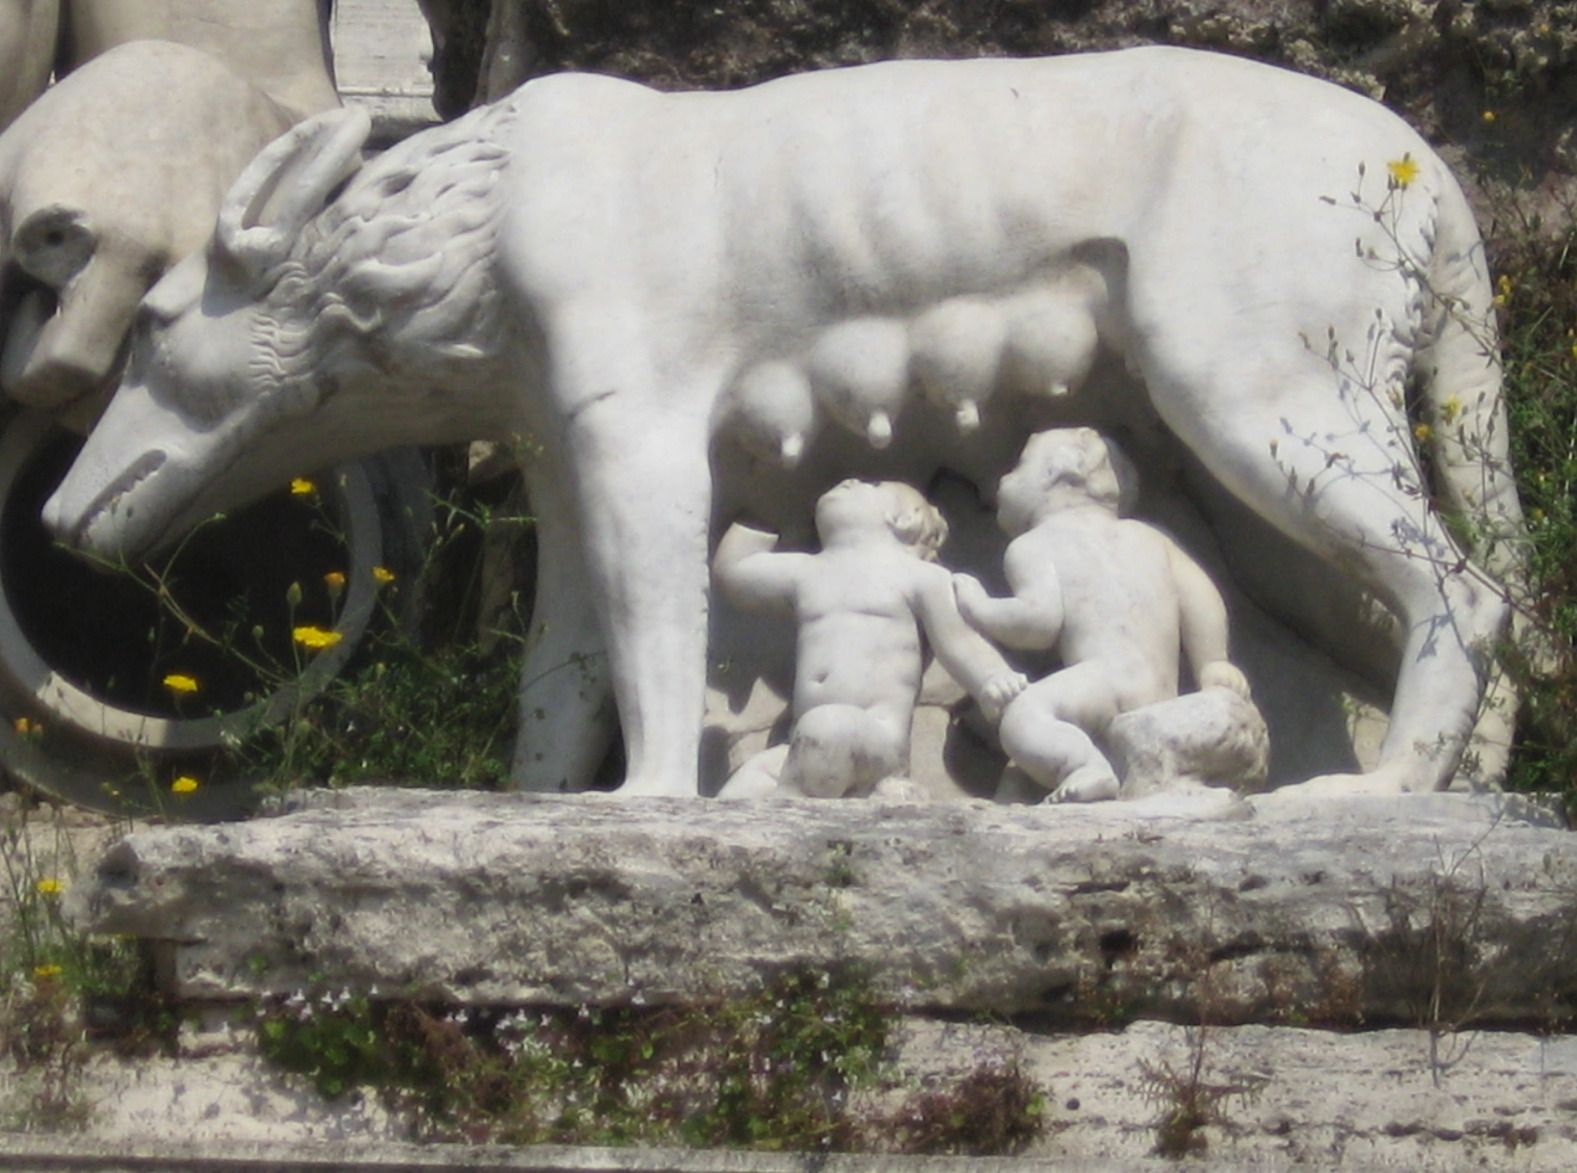 bbd12cb5e85 La Lupa, the She-wolf with Remus and Romulus. | The She-wolf of Rome ...